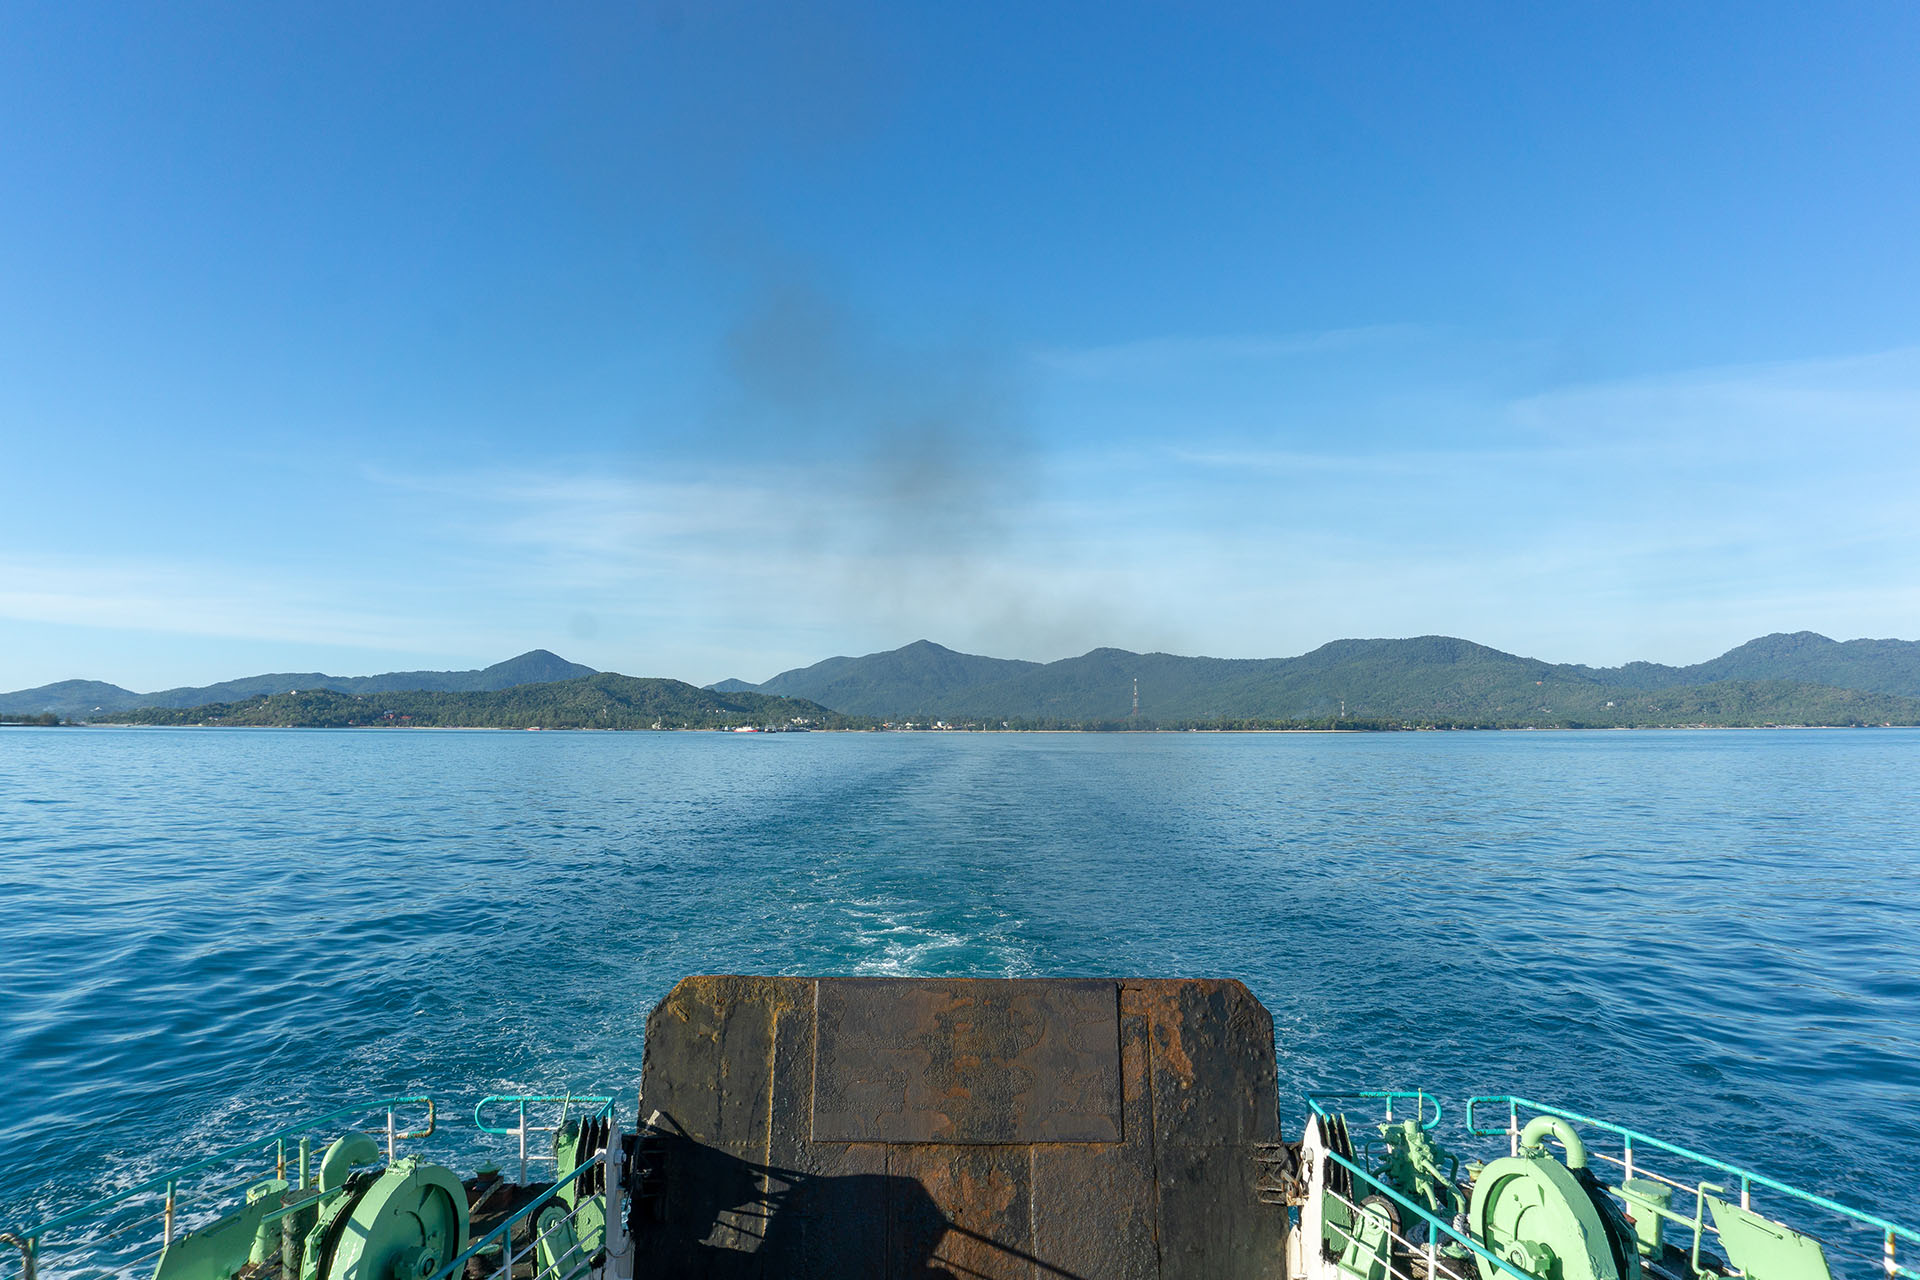 View on Pha Ngan from a ferry